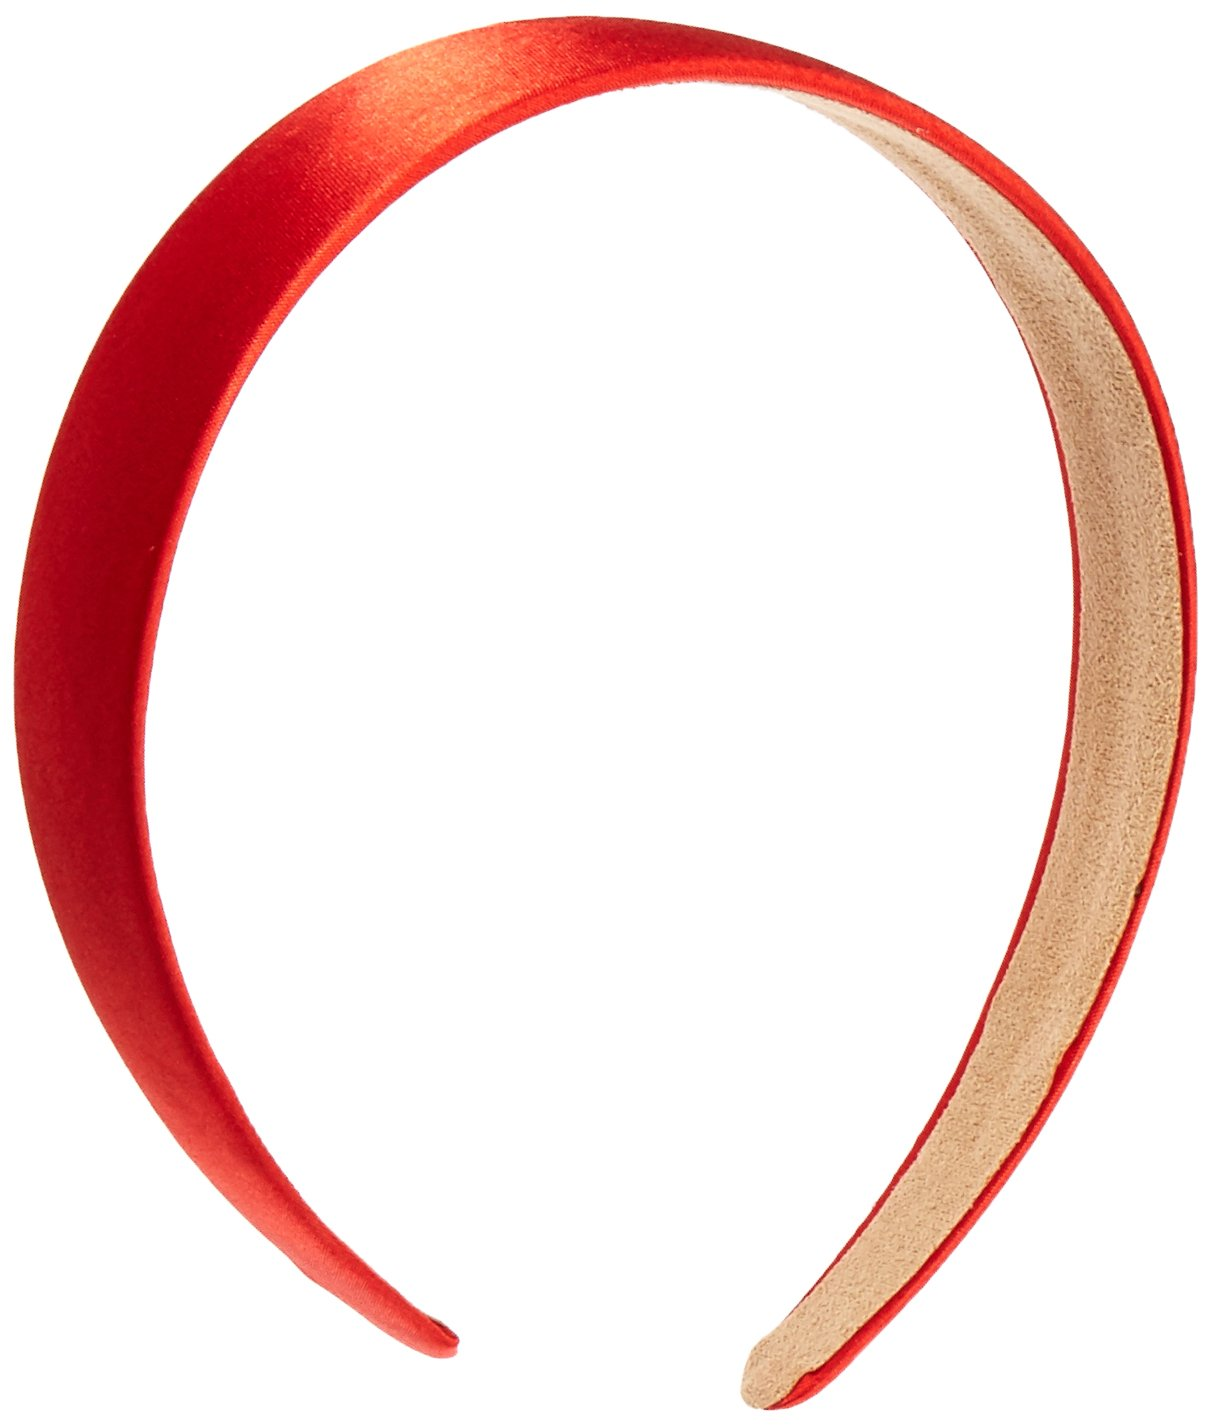 Trimweaver 1-Piece 25mm Satin Covered Headband, 1-Inch, Red TW-SCHB-25-RED-01